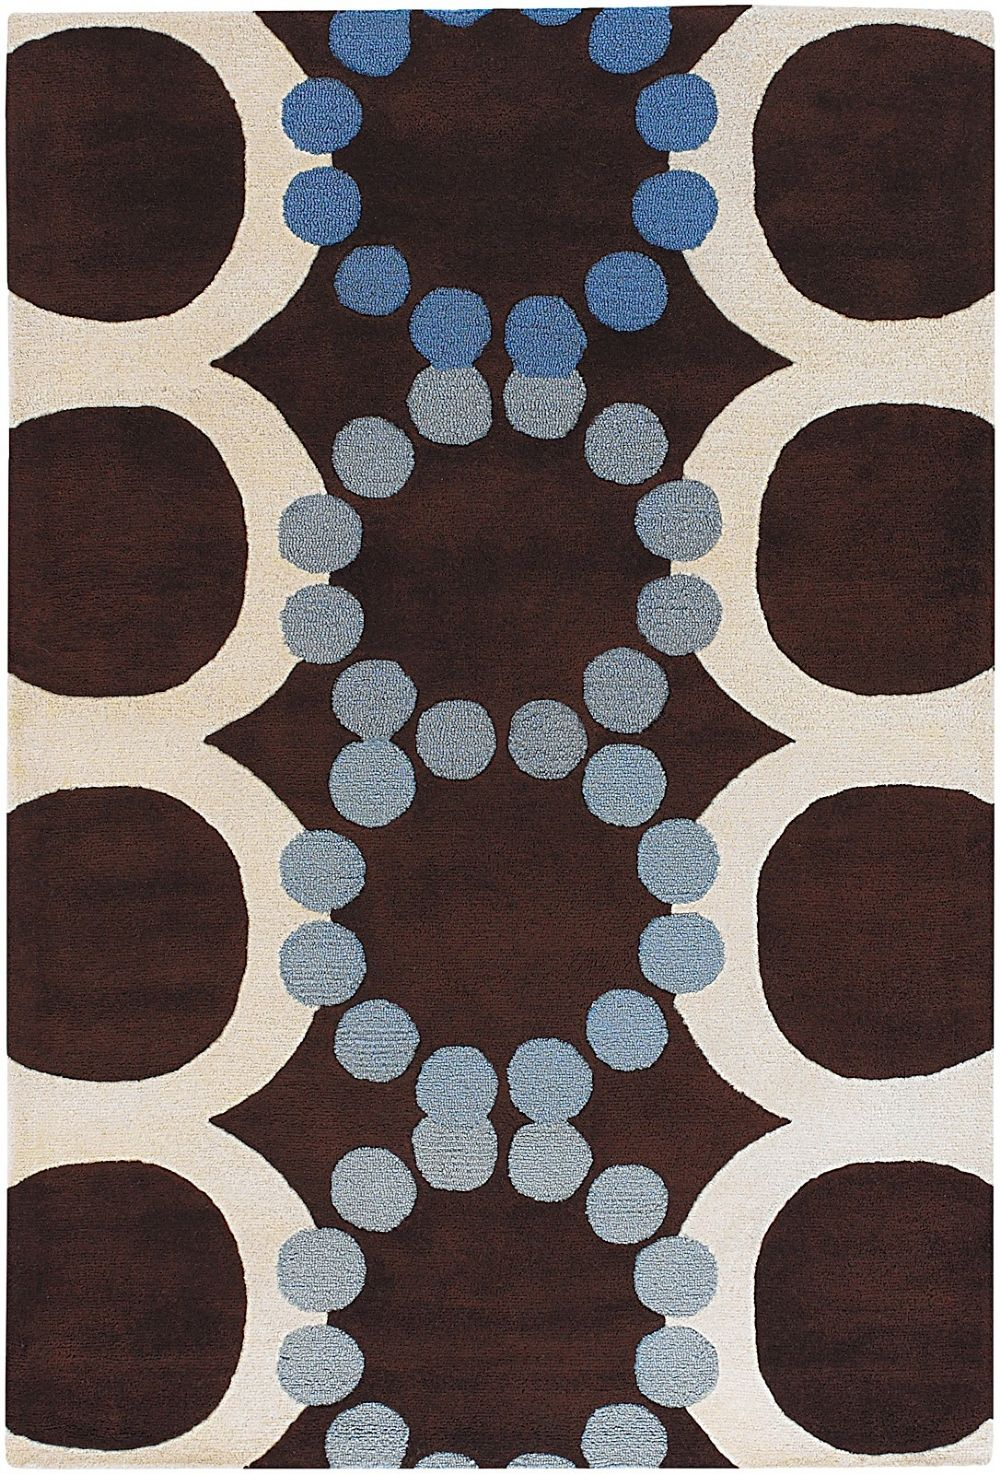 chandra avalisa contemporary area rug collection